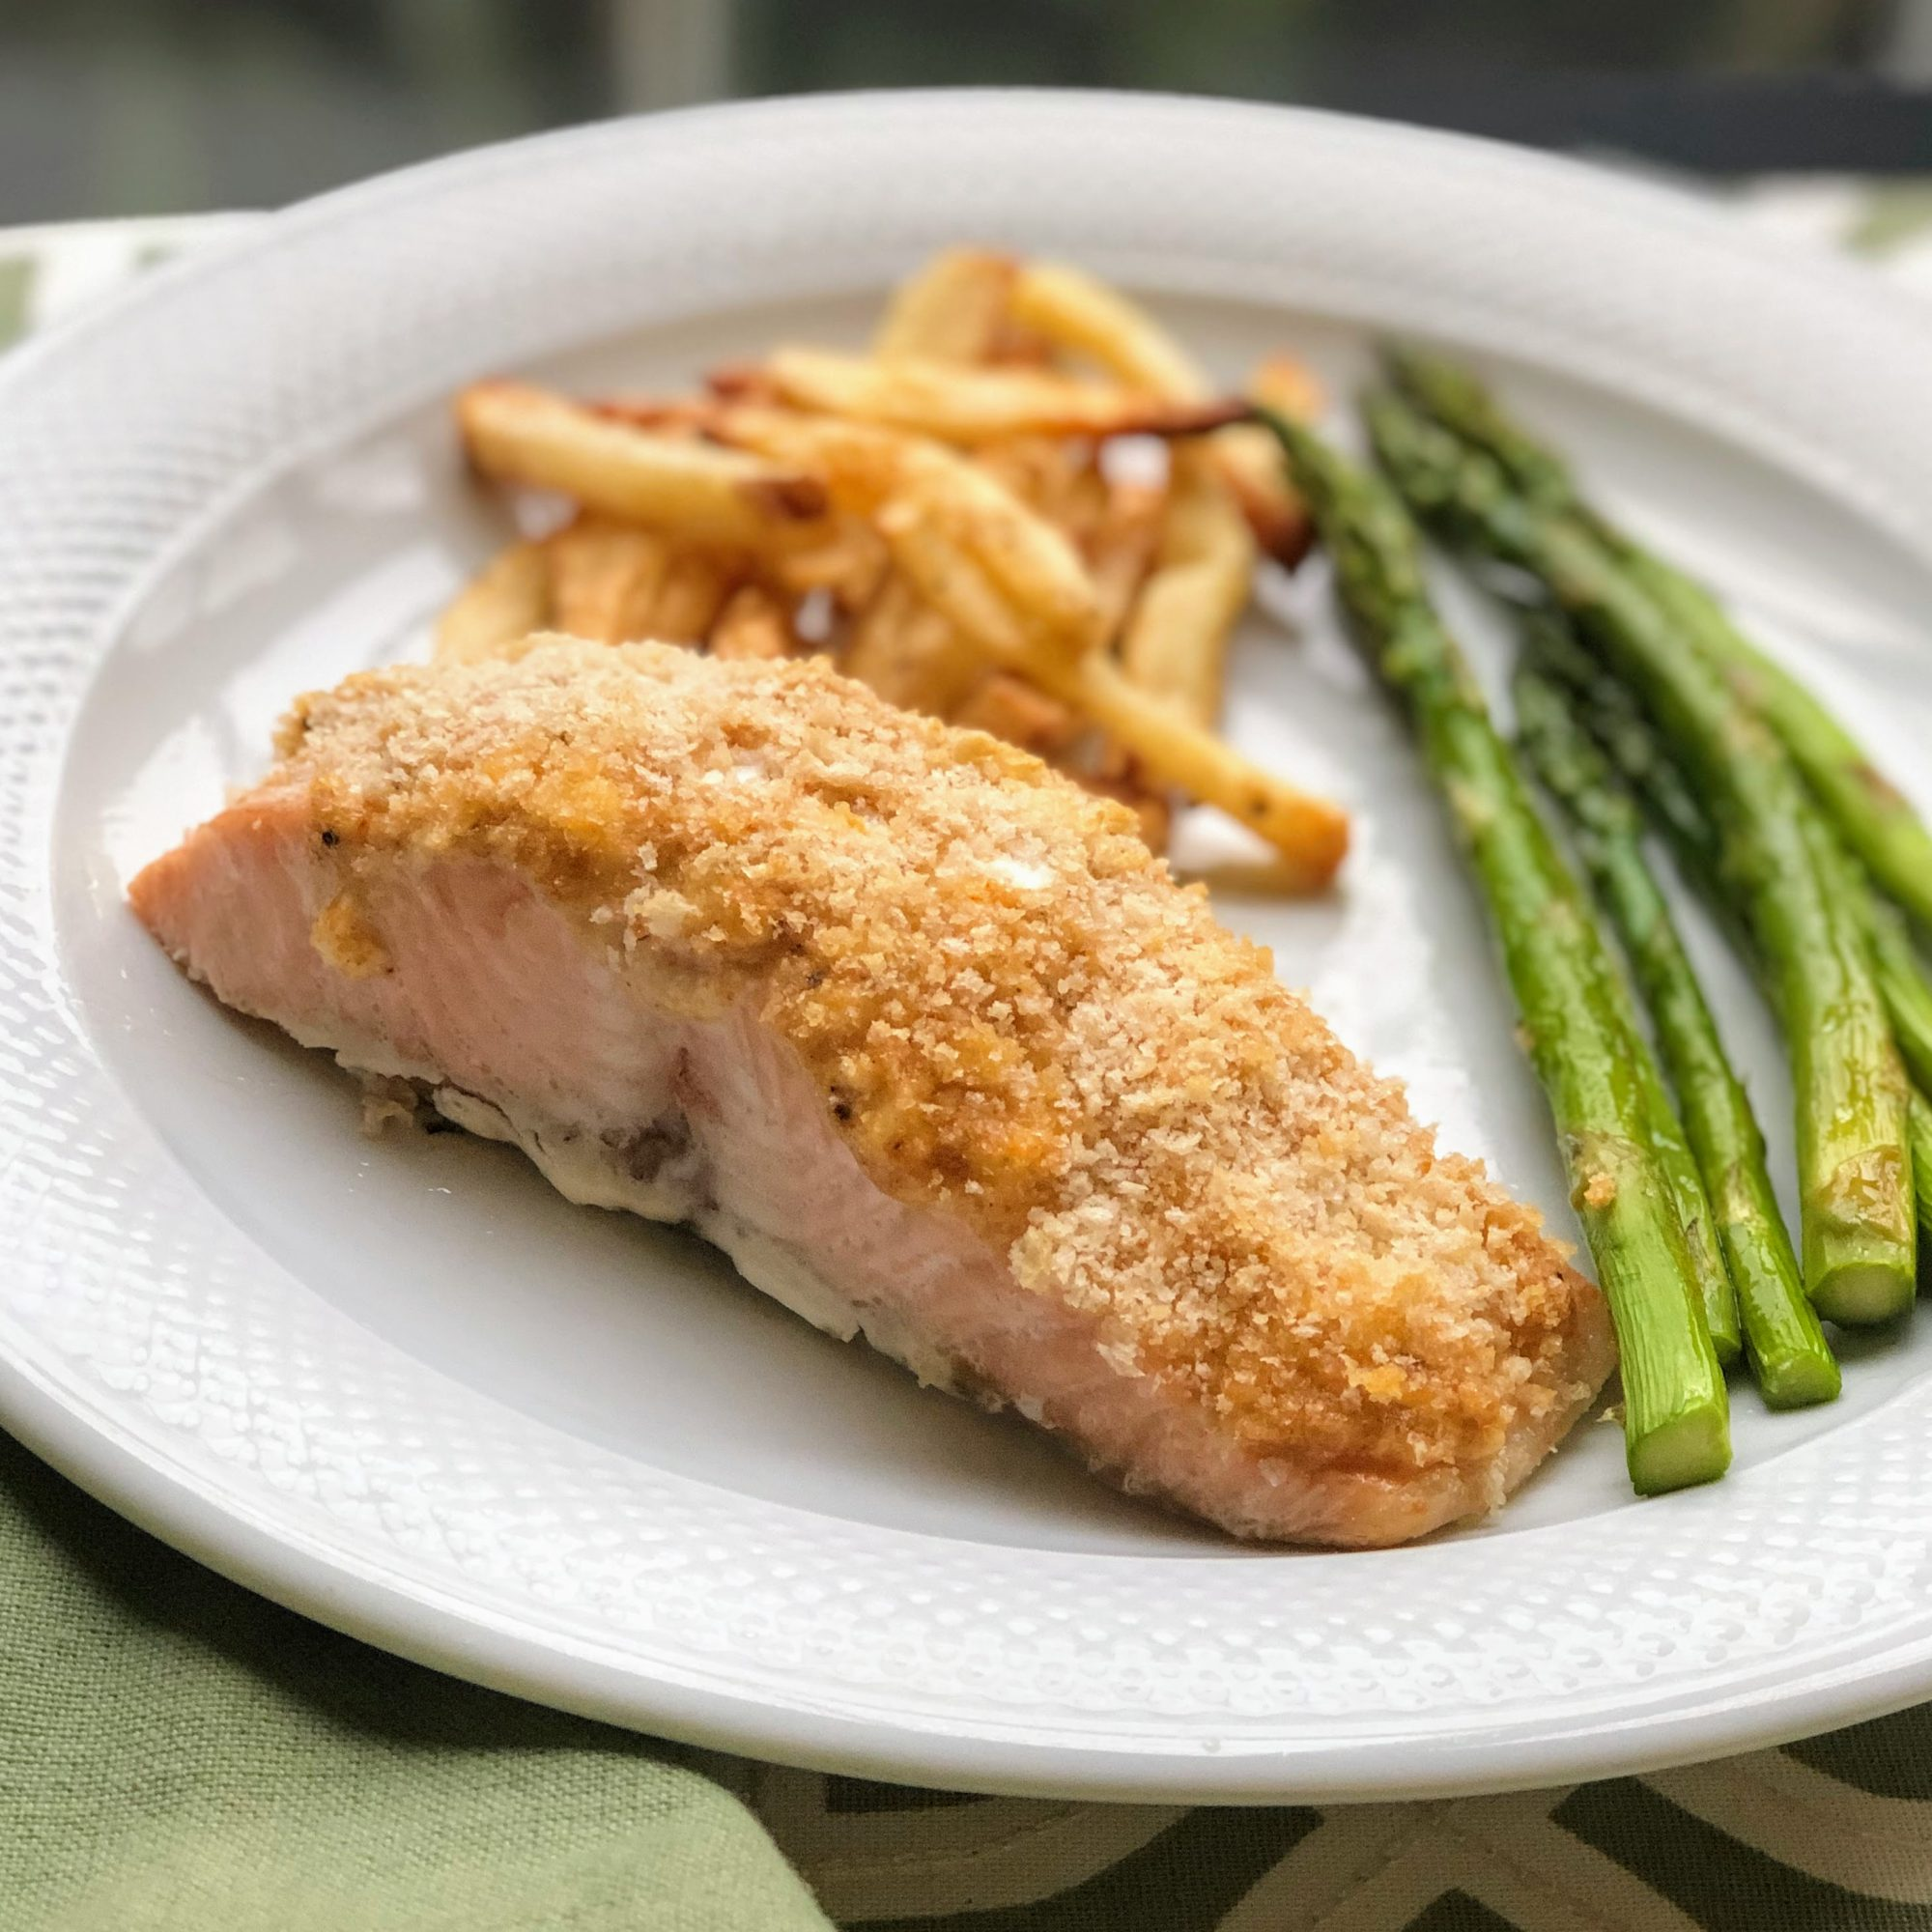 salmon fillet with bread topping and asparagus and fries on the side